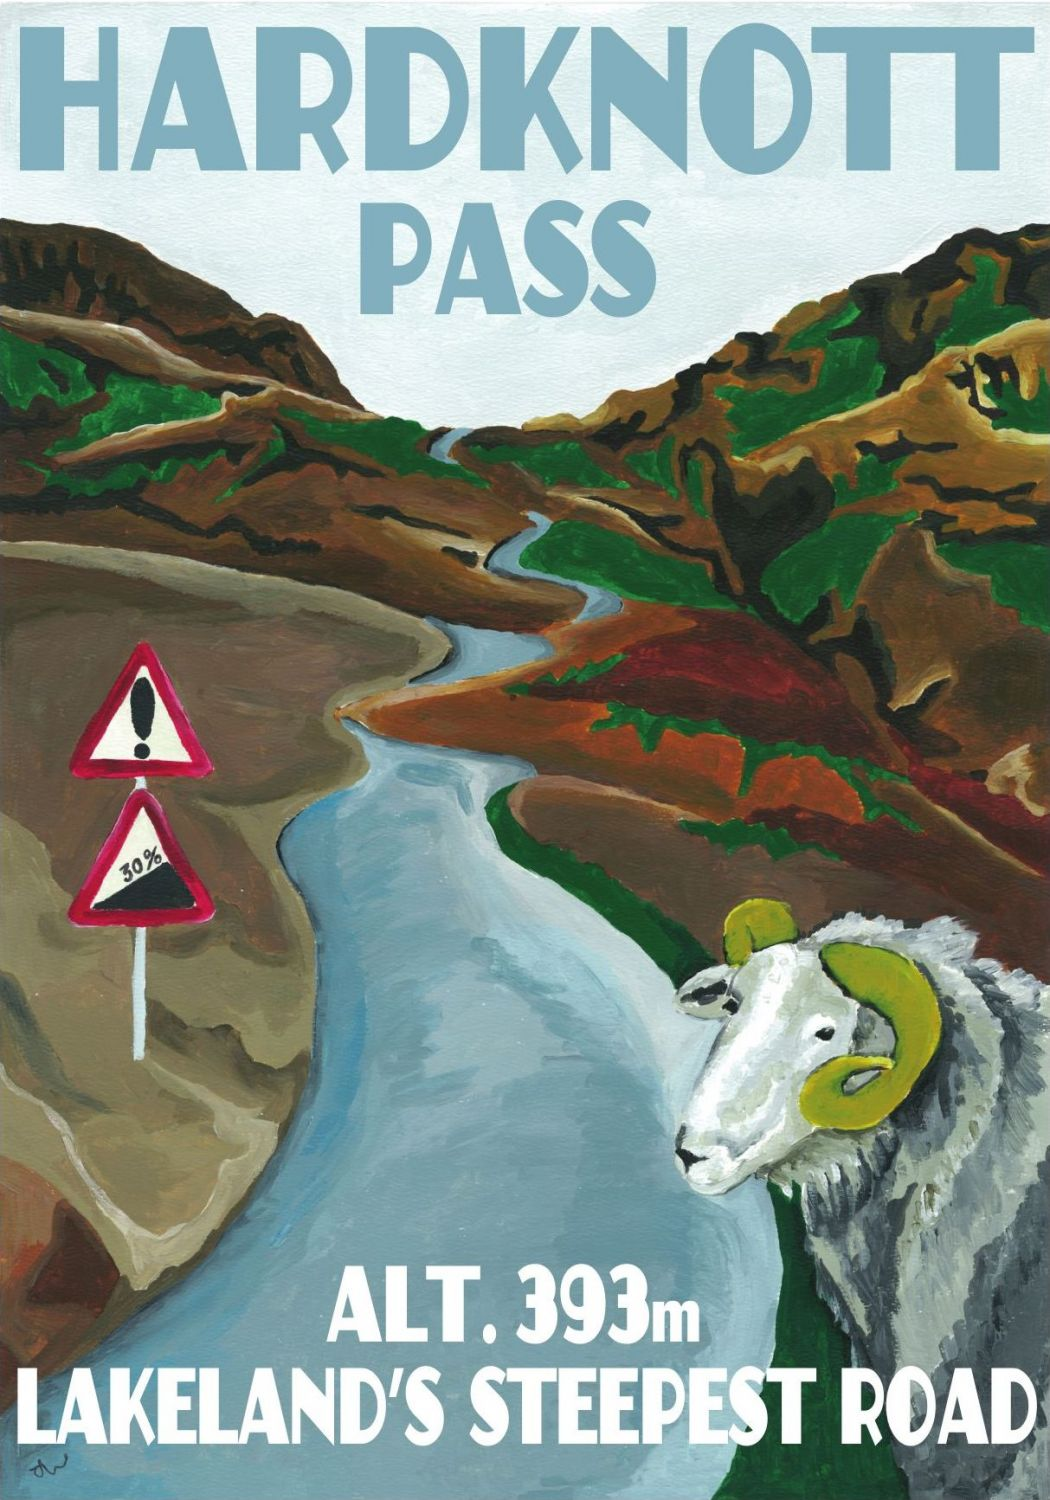 Hard Knott Pass, Cumbria. Lake District A3 Posters painted by Artist Jo Witherington.